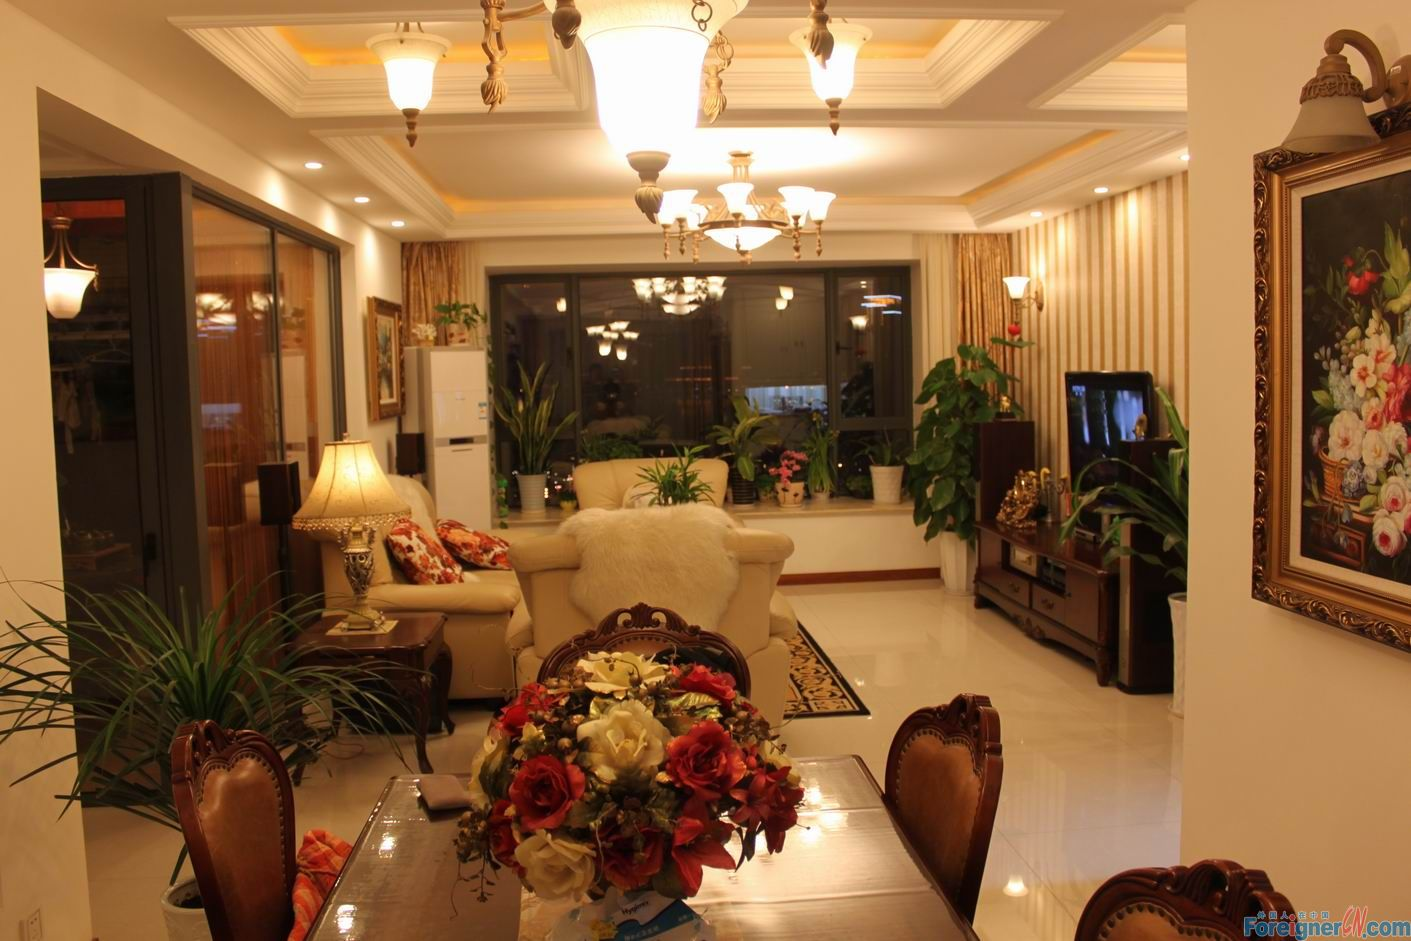 Lakeside Palace, 170sqm, 5rooms, floor heating, wonderful lakeview, near the metro,times square